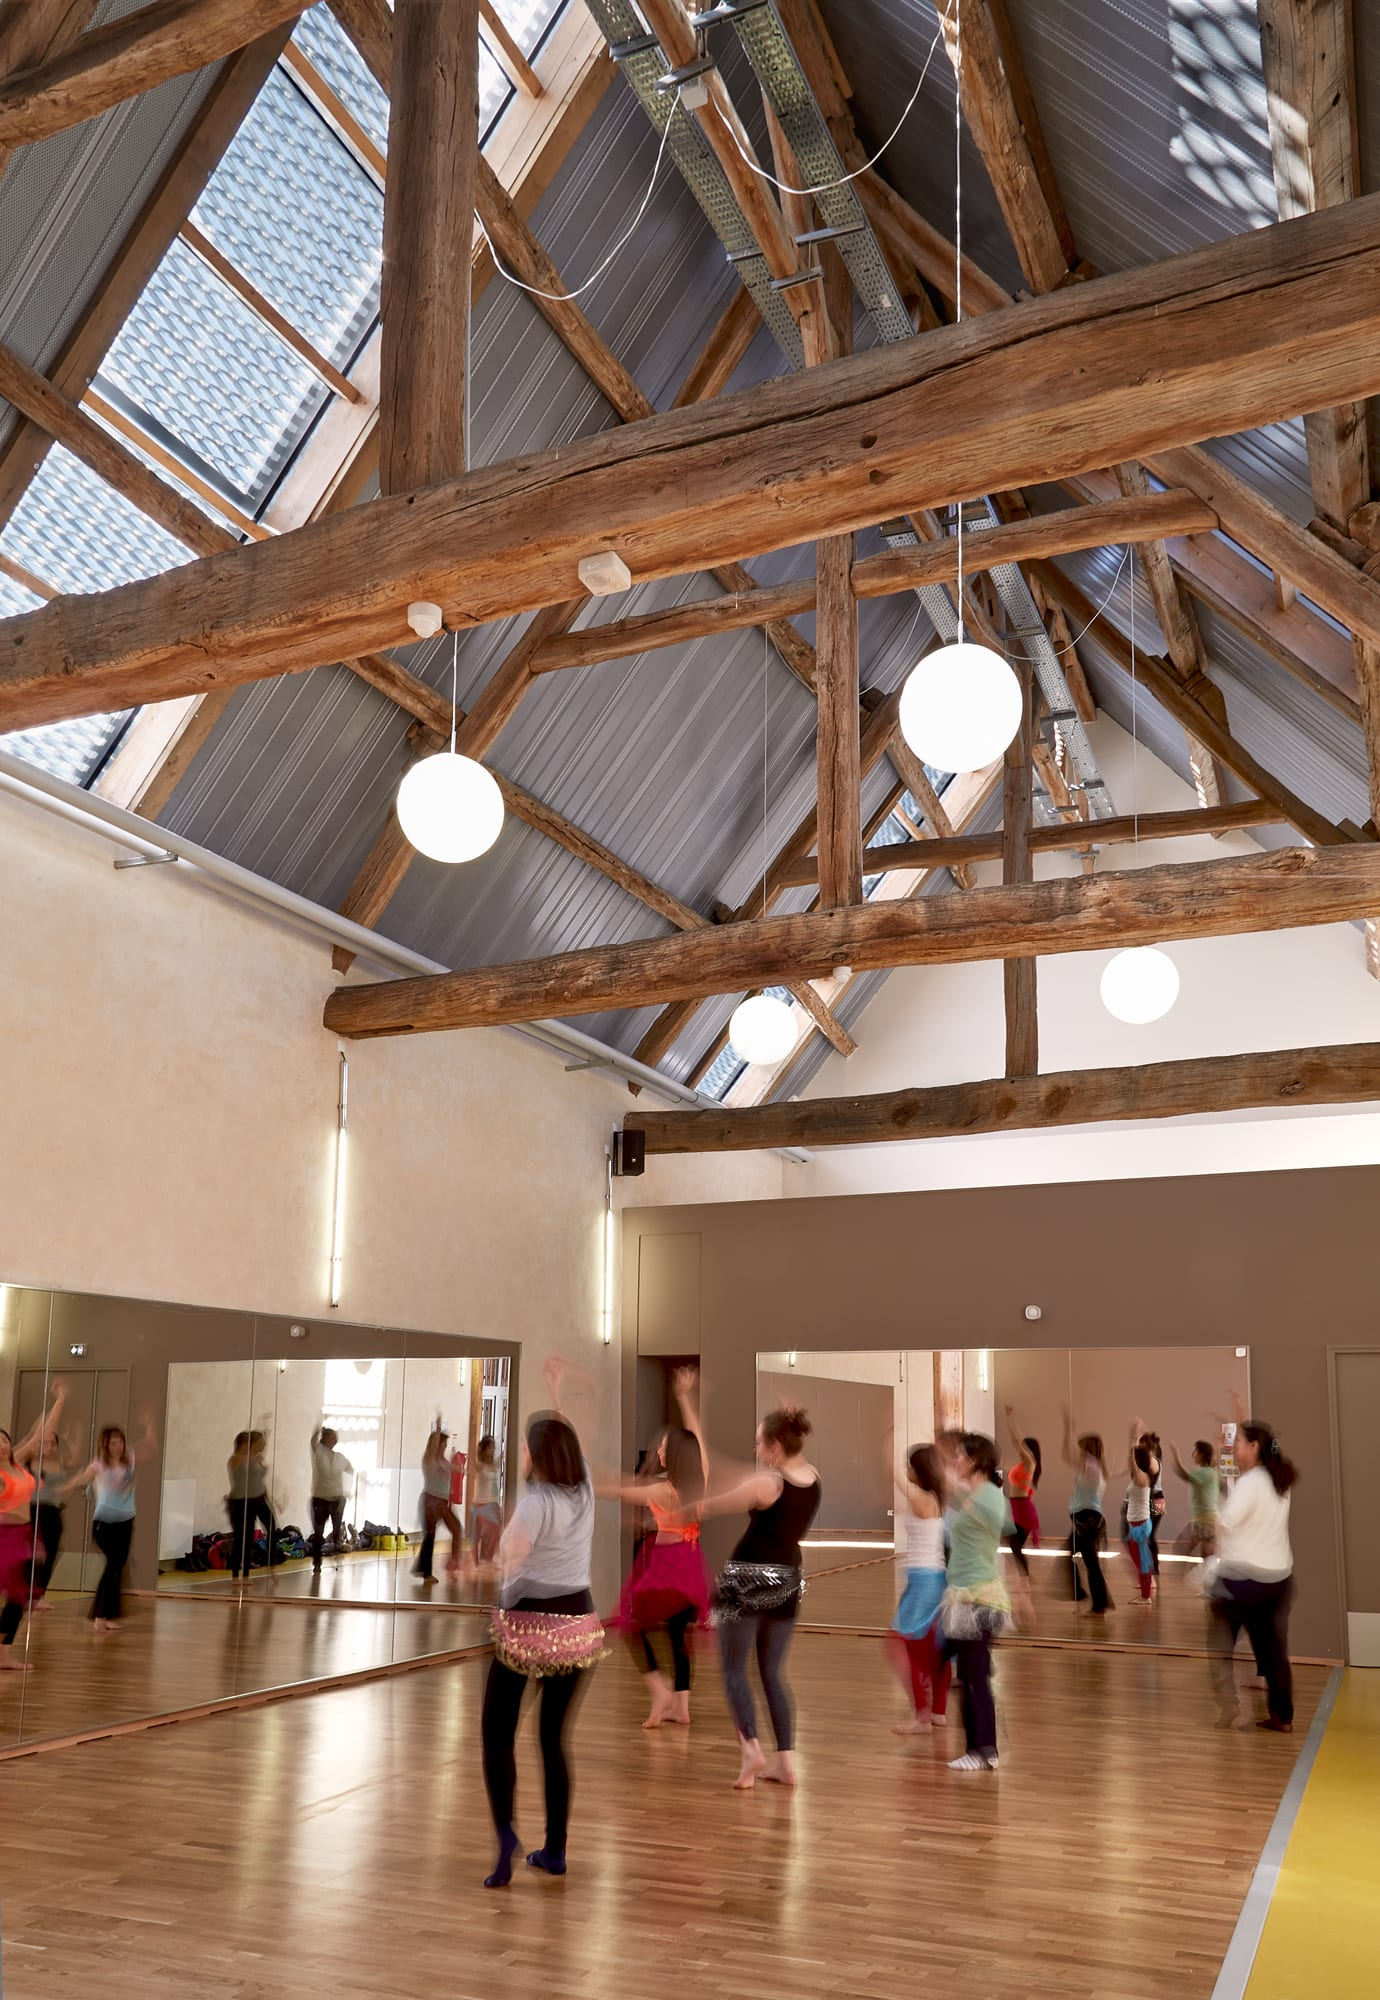 Gyms and sport halls a collection curated by divisare for Maison marne la vallee